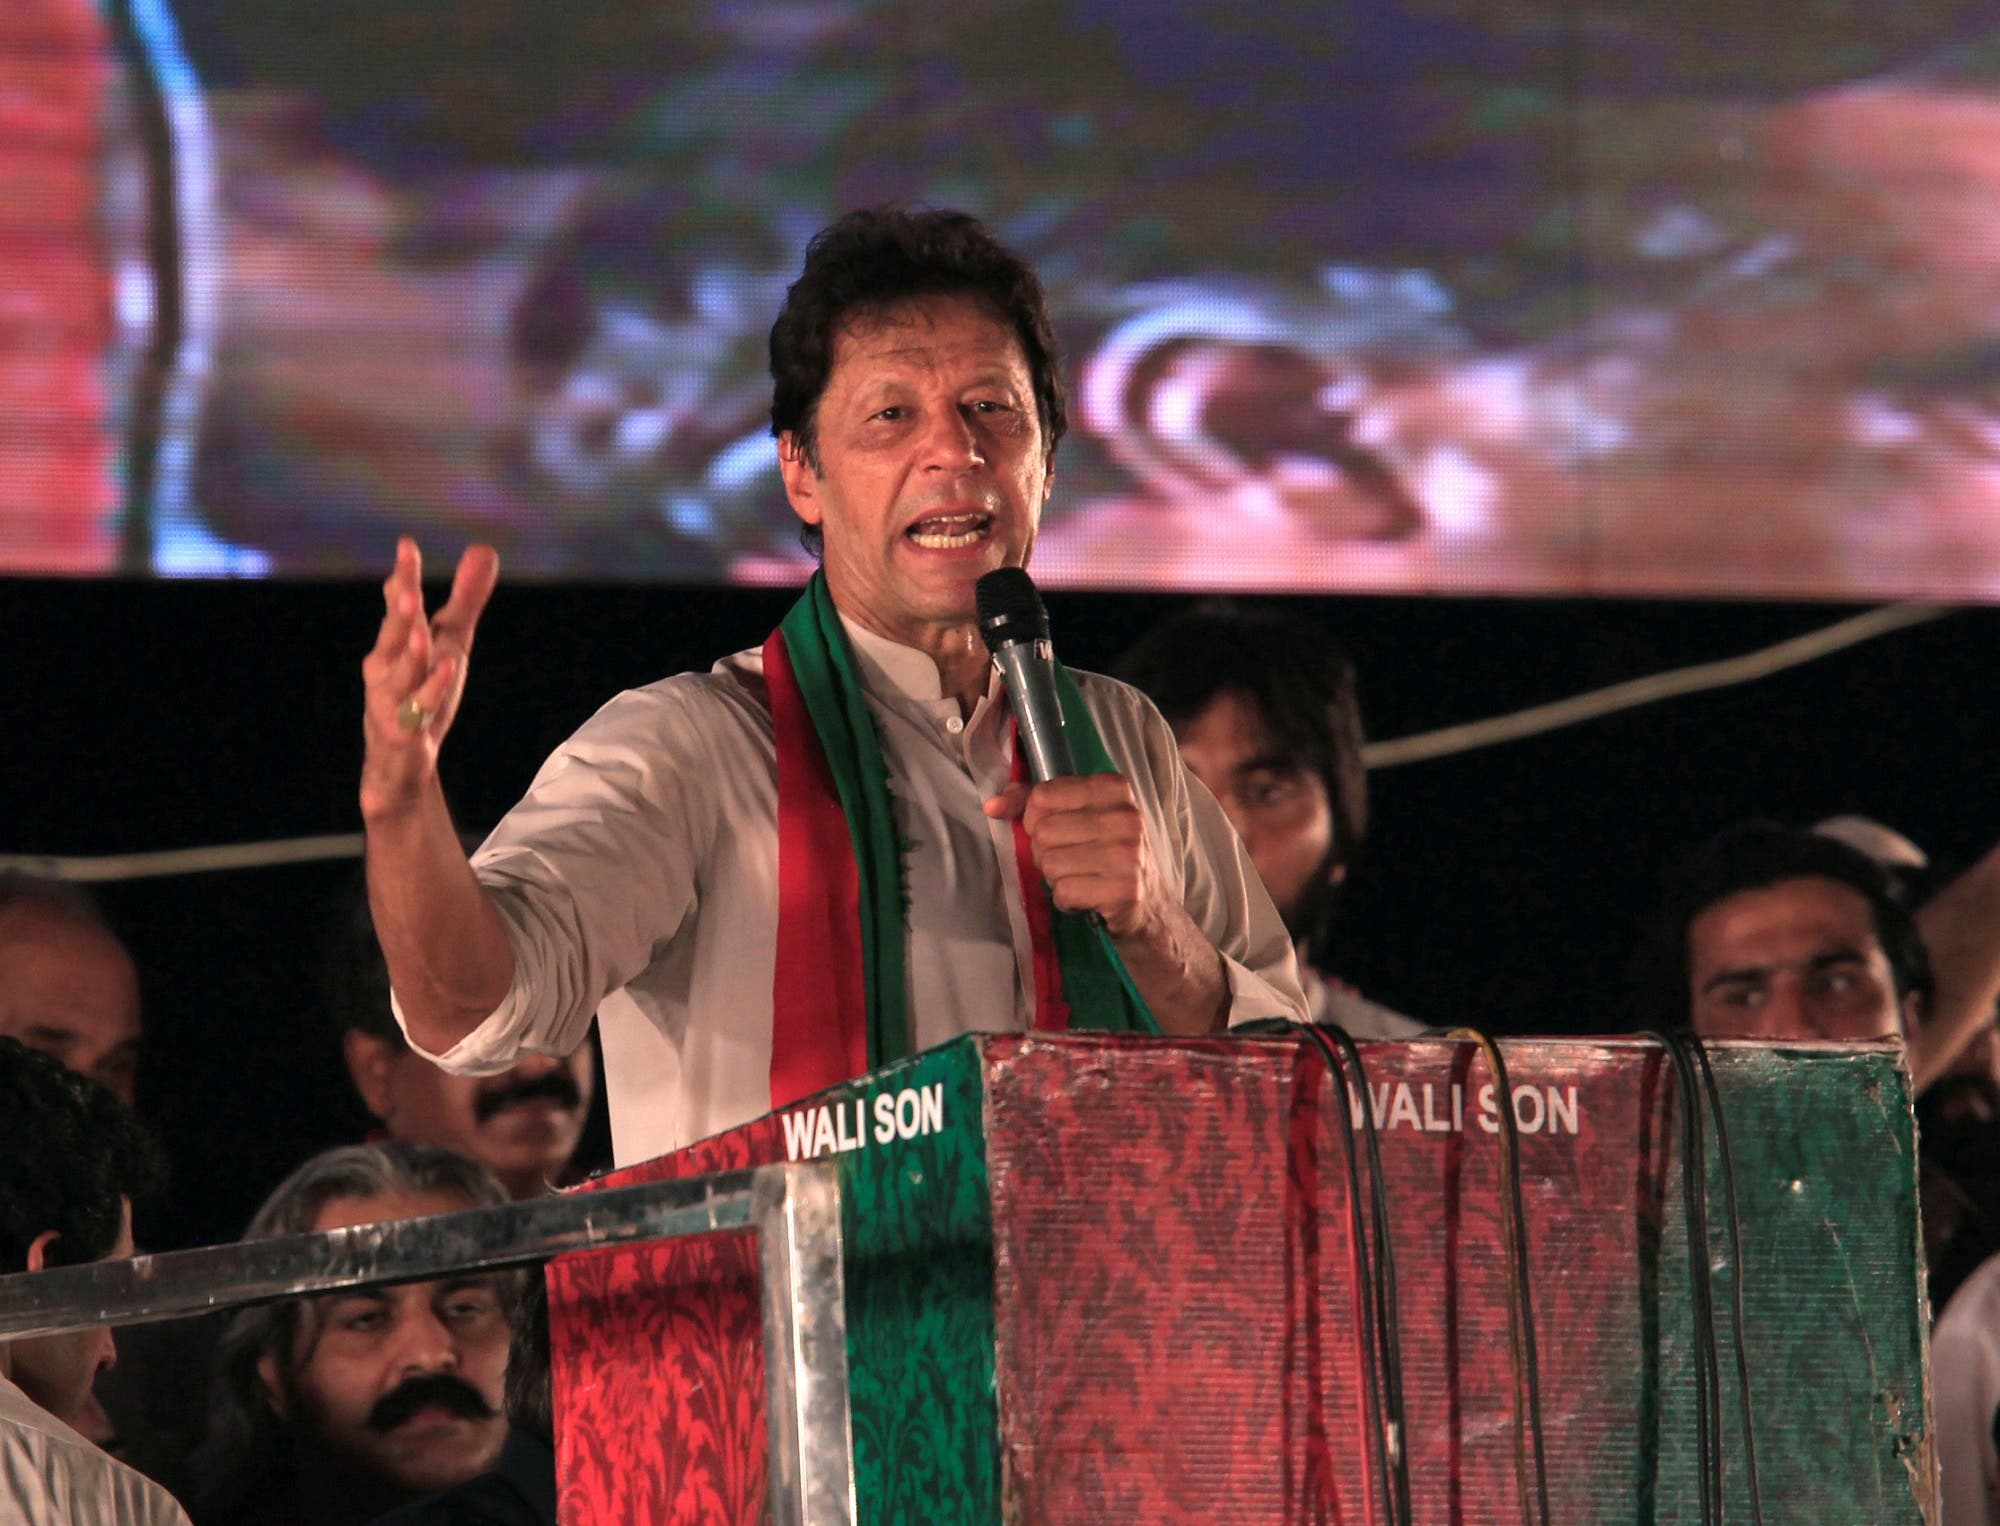 Imran Khan speaks to supporters during a celebration rally after the Supreme Court disqualified Prime Minister Nawaz Sharif in Islamabad, Pakistan, on July 30, 2017. (Reuters)